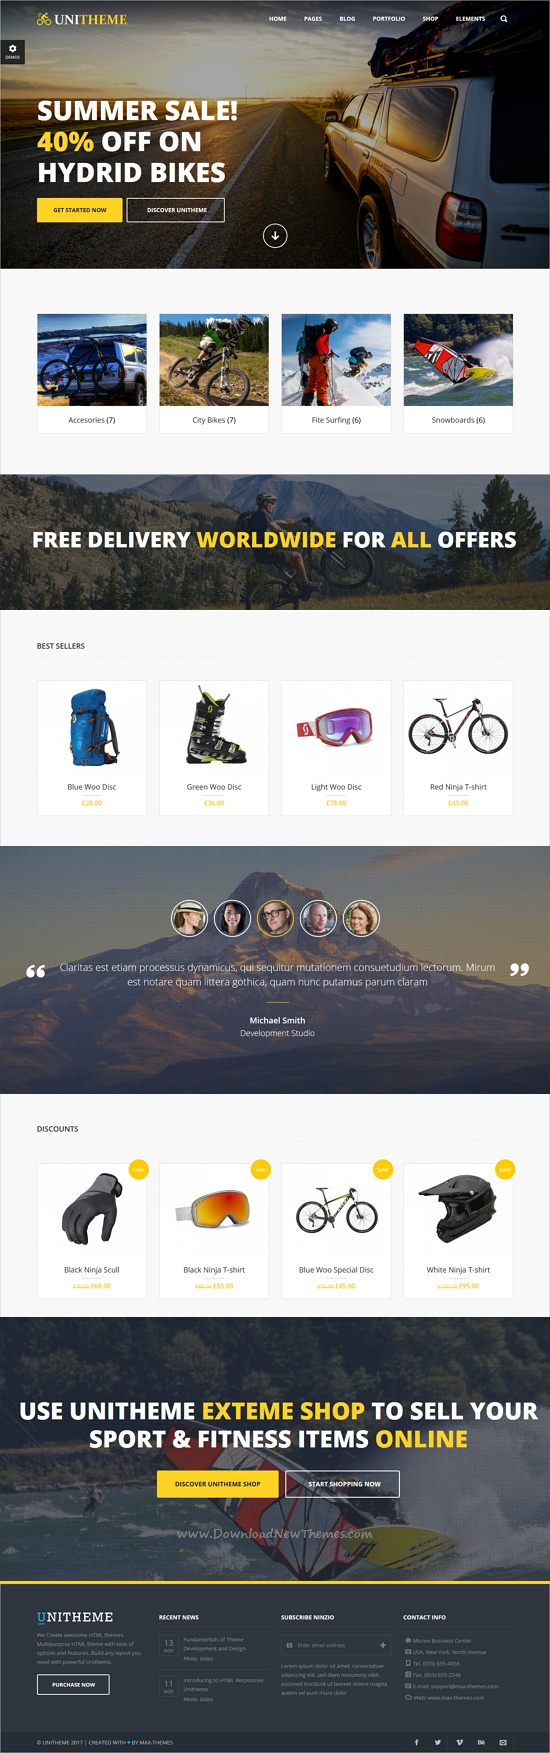 UniTheme - Responsive Multi-Purpose HTML Template | Ecommerce ...